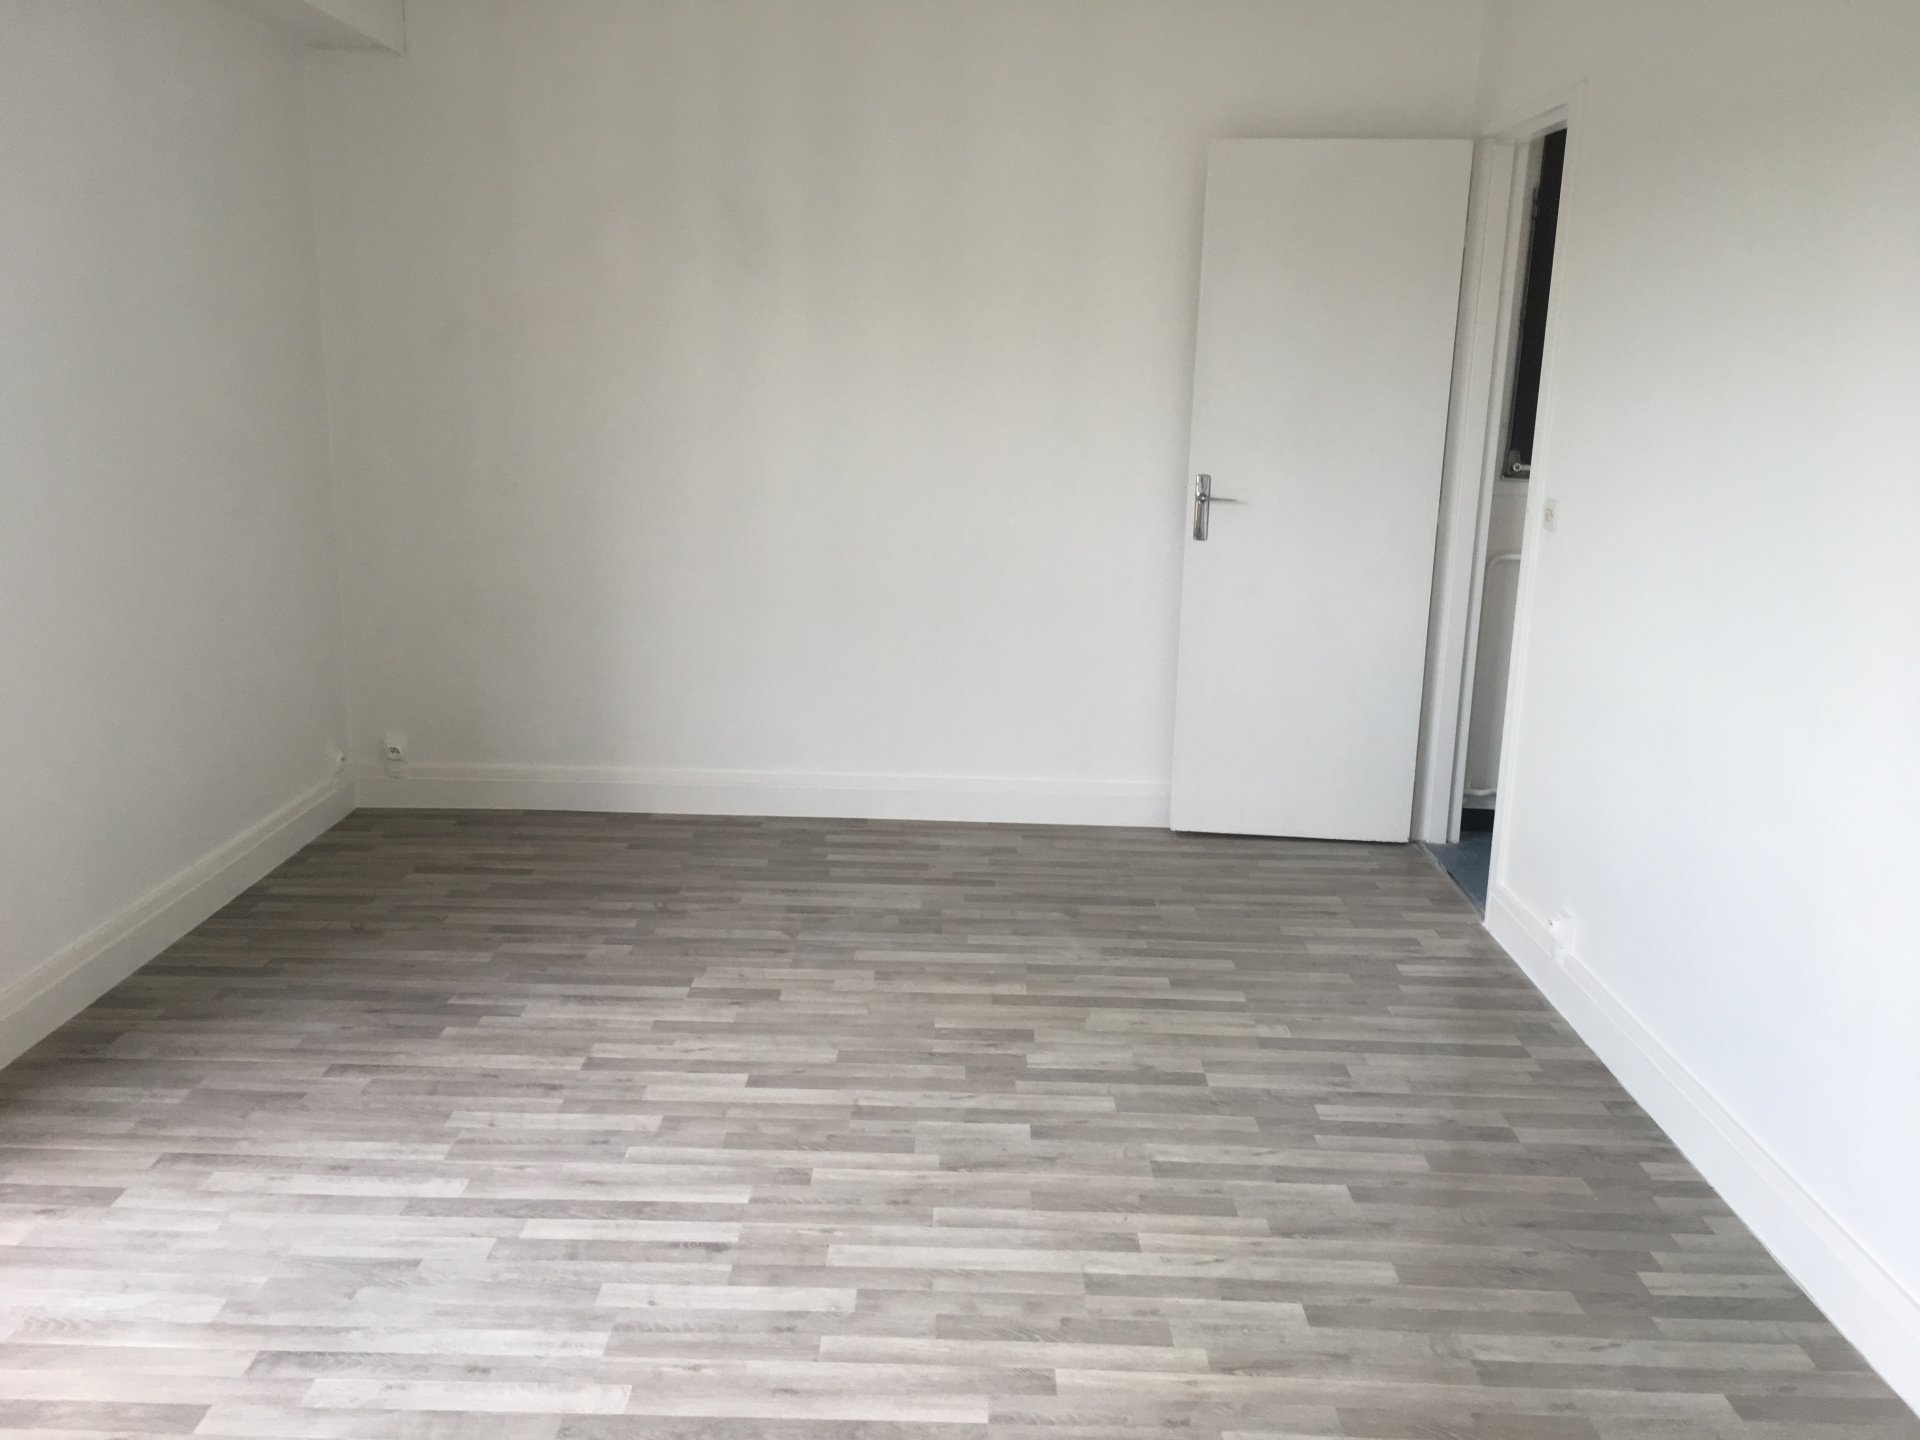 Location Appartement - Saint-Germain-en-Laye